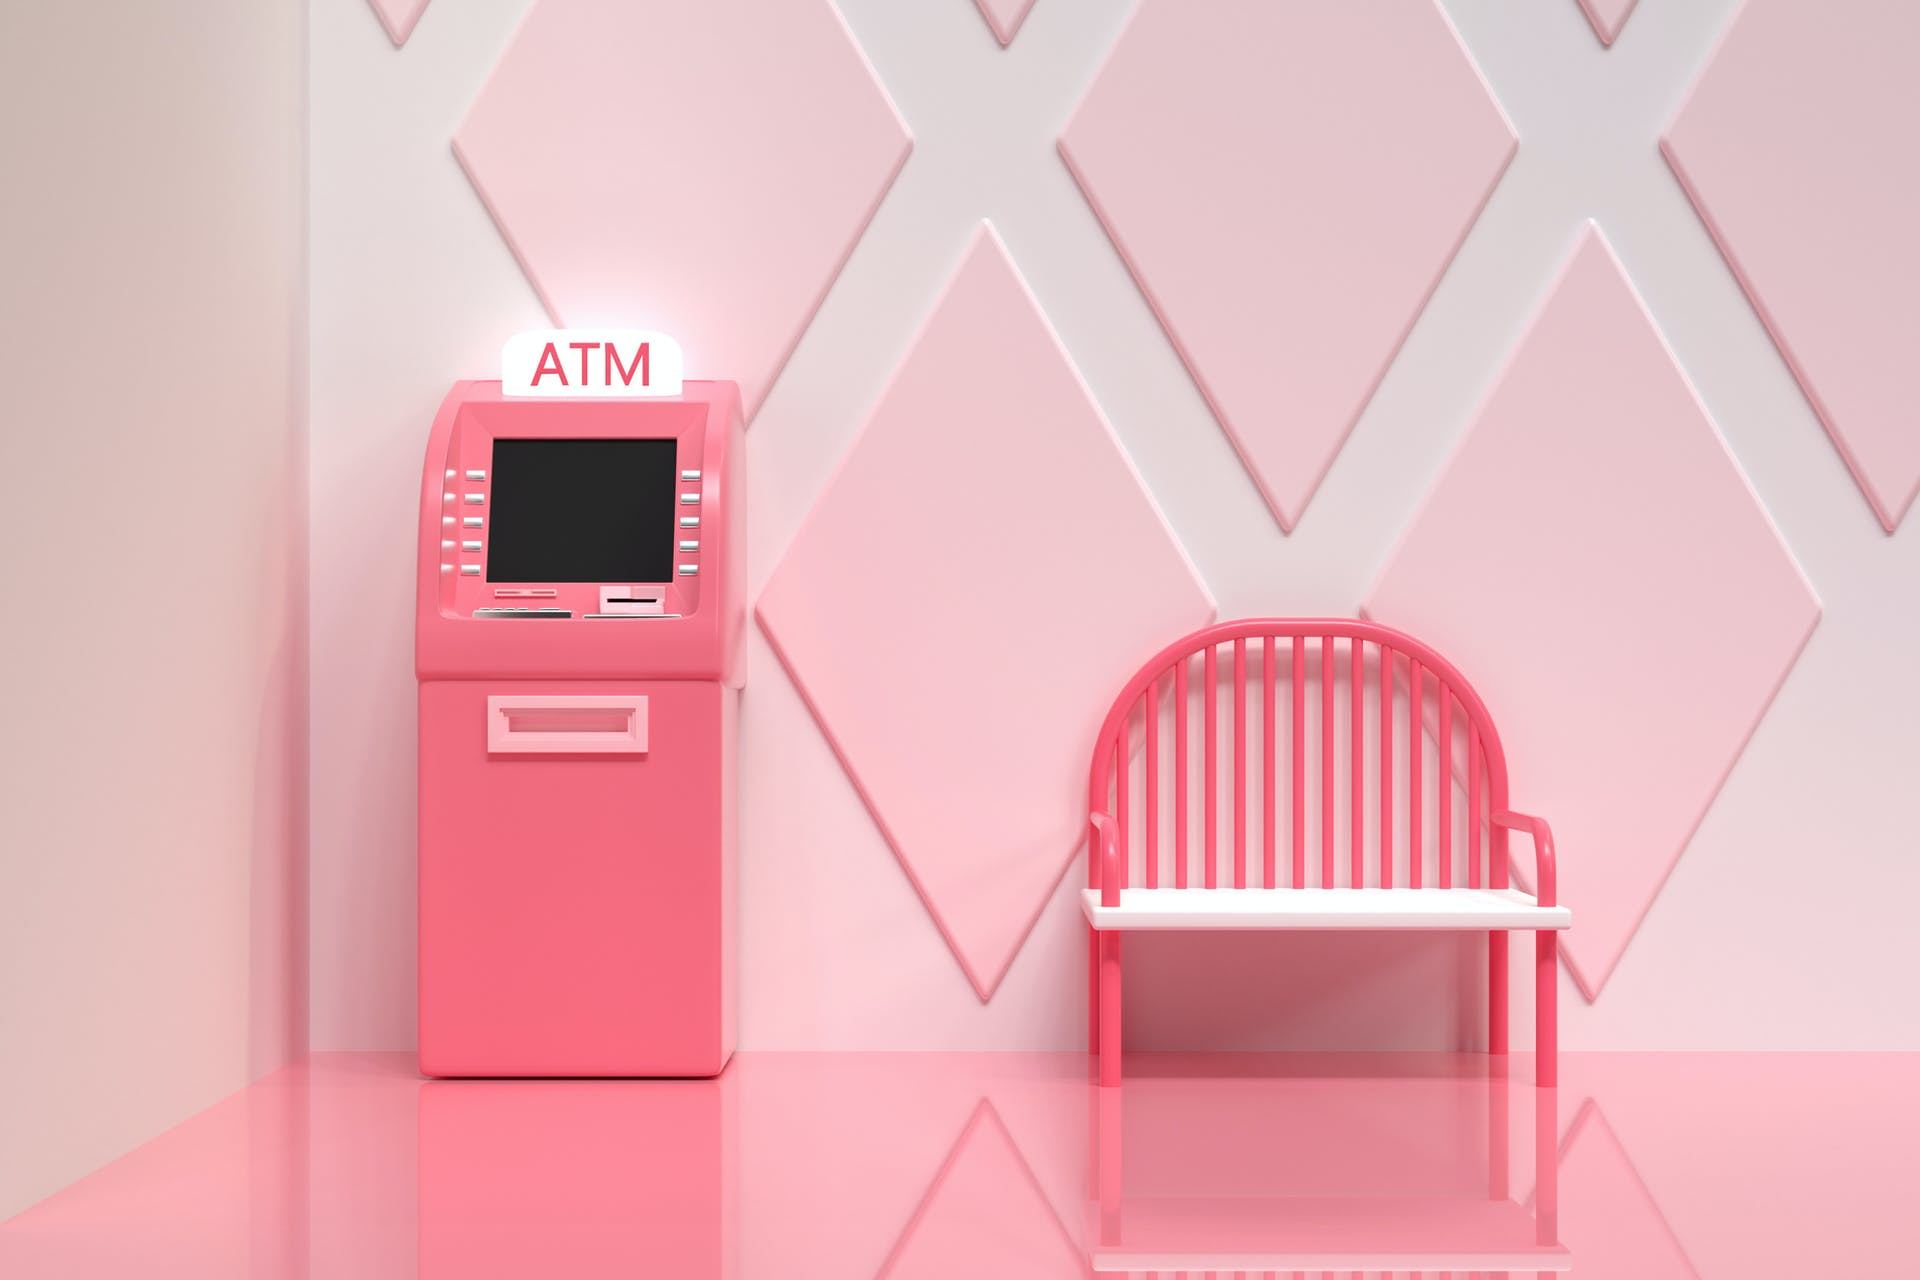 A pink model of an ATM machine next to a pink model bench